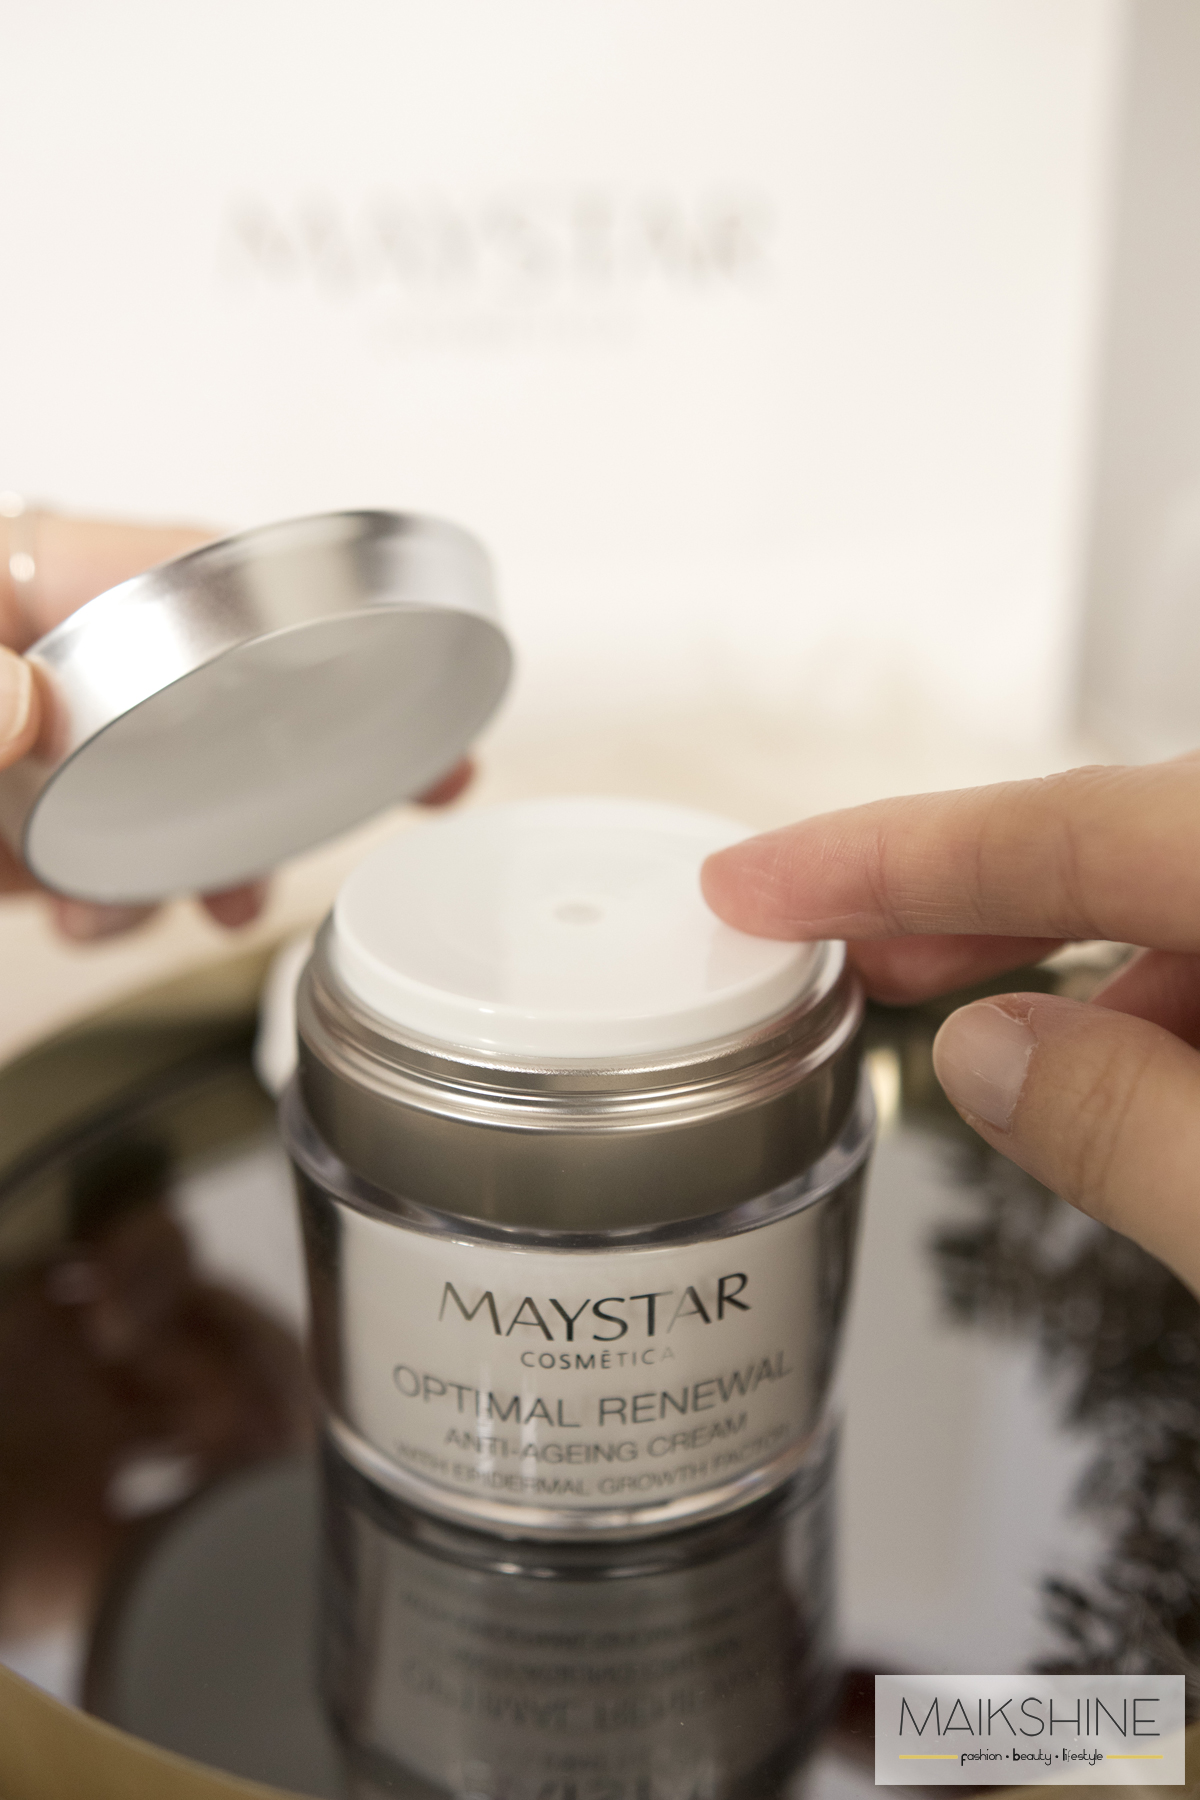 Maystar Optimal Renewal crema